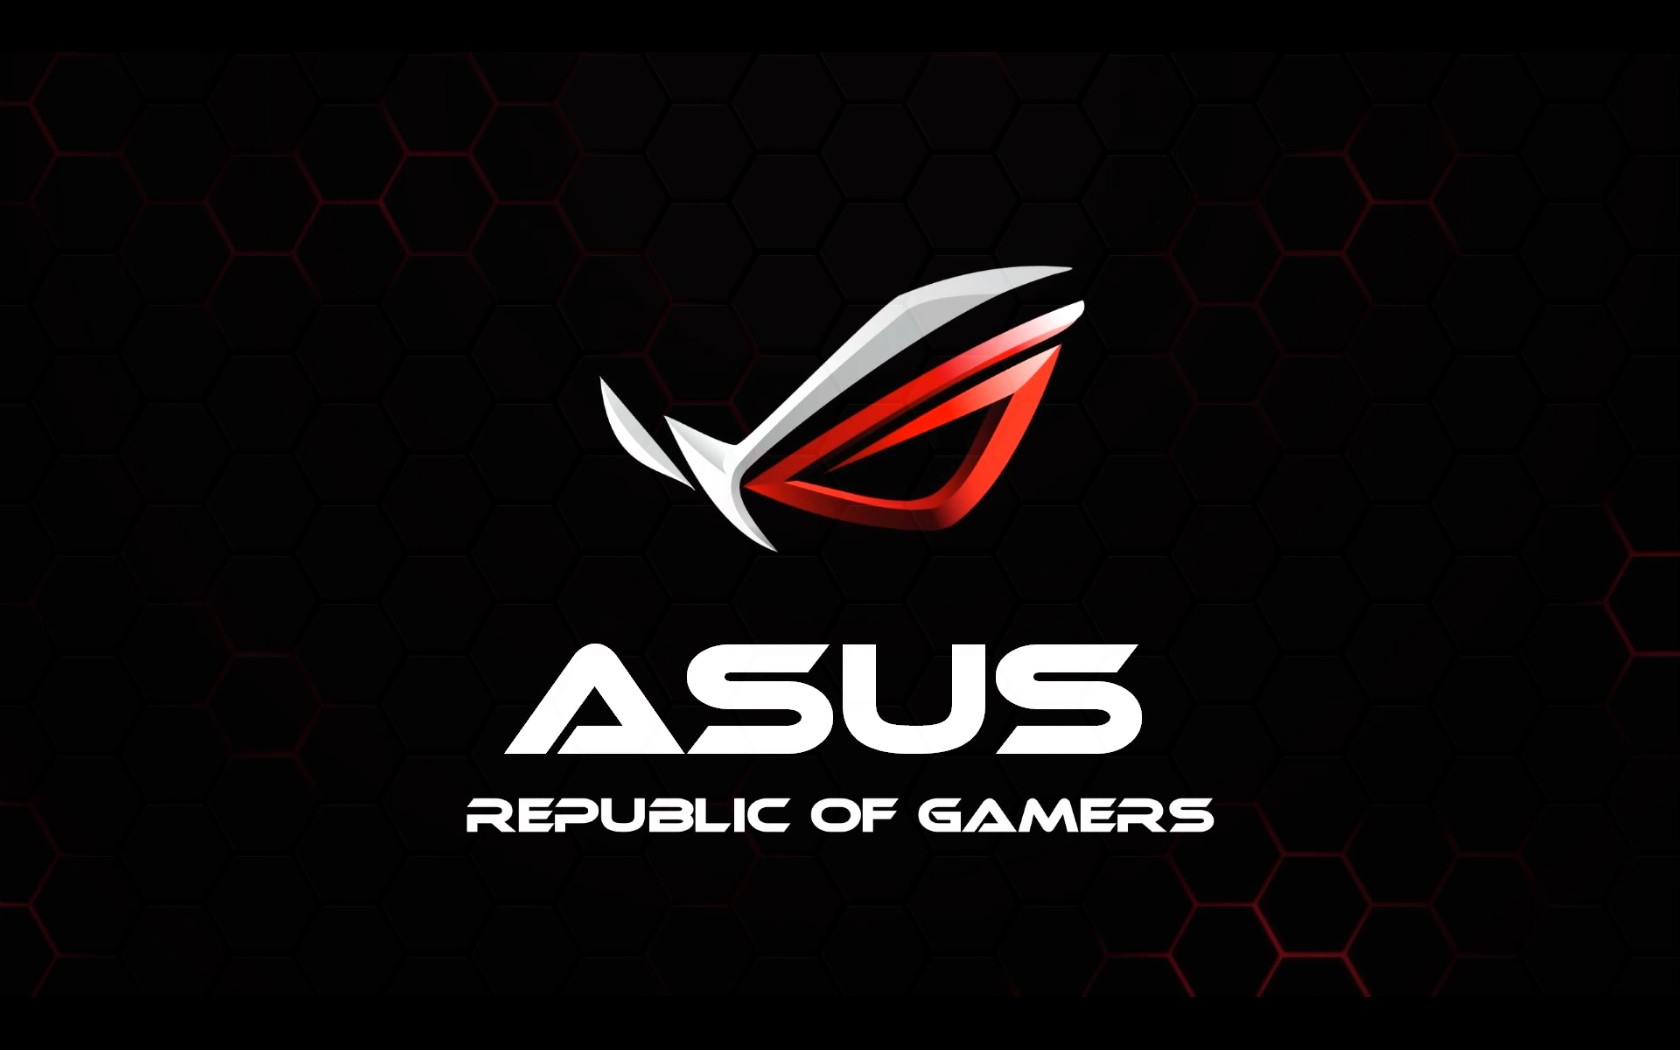 Asus logos - Asus x series wallpaper hd ...